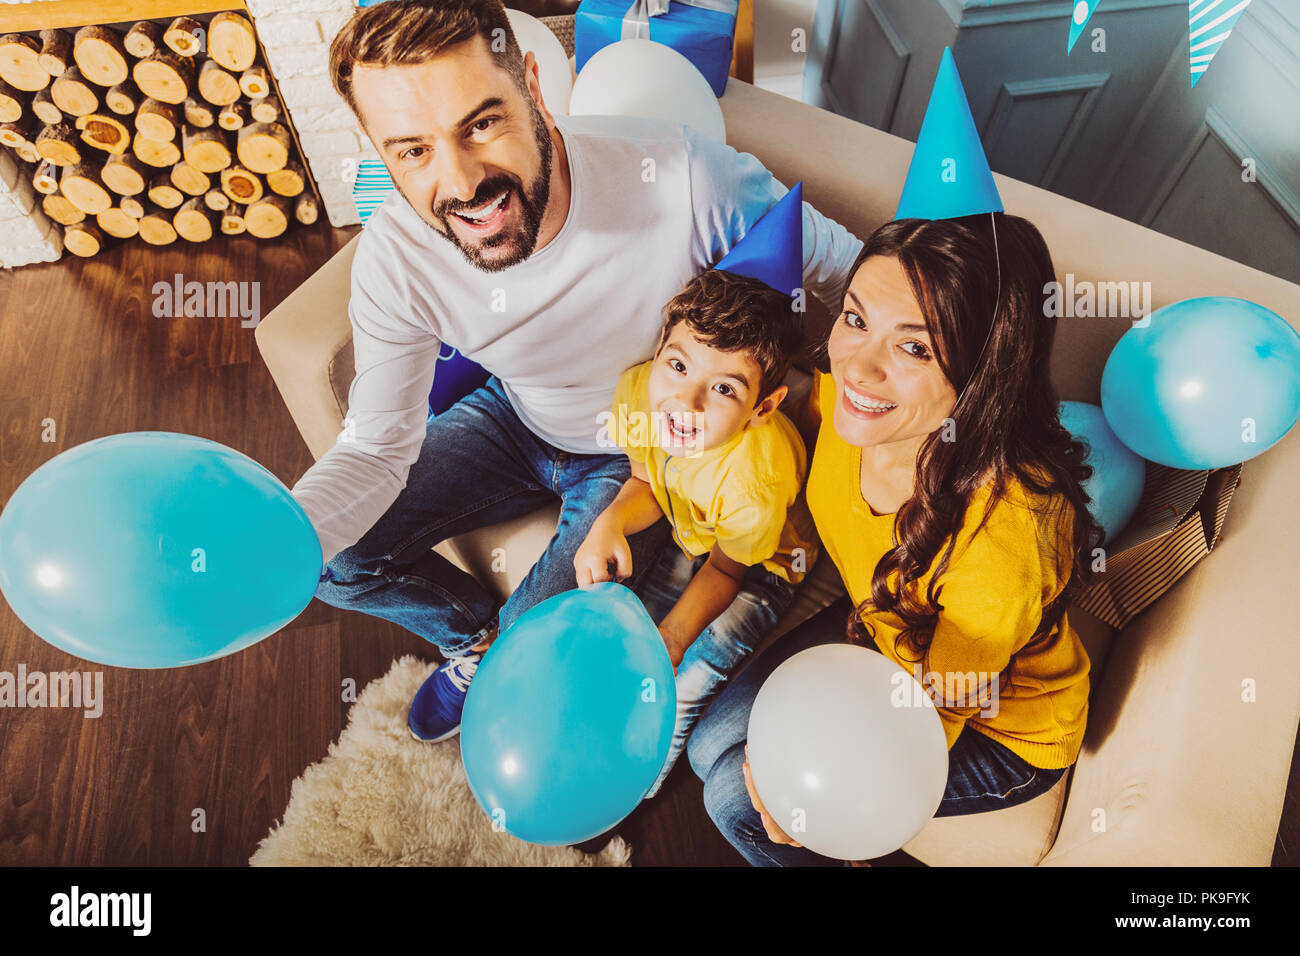 Pleasant merry family having birthday party - Stock Image